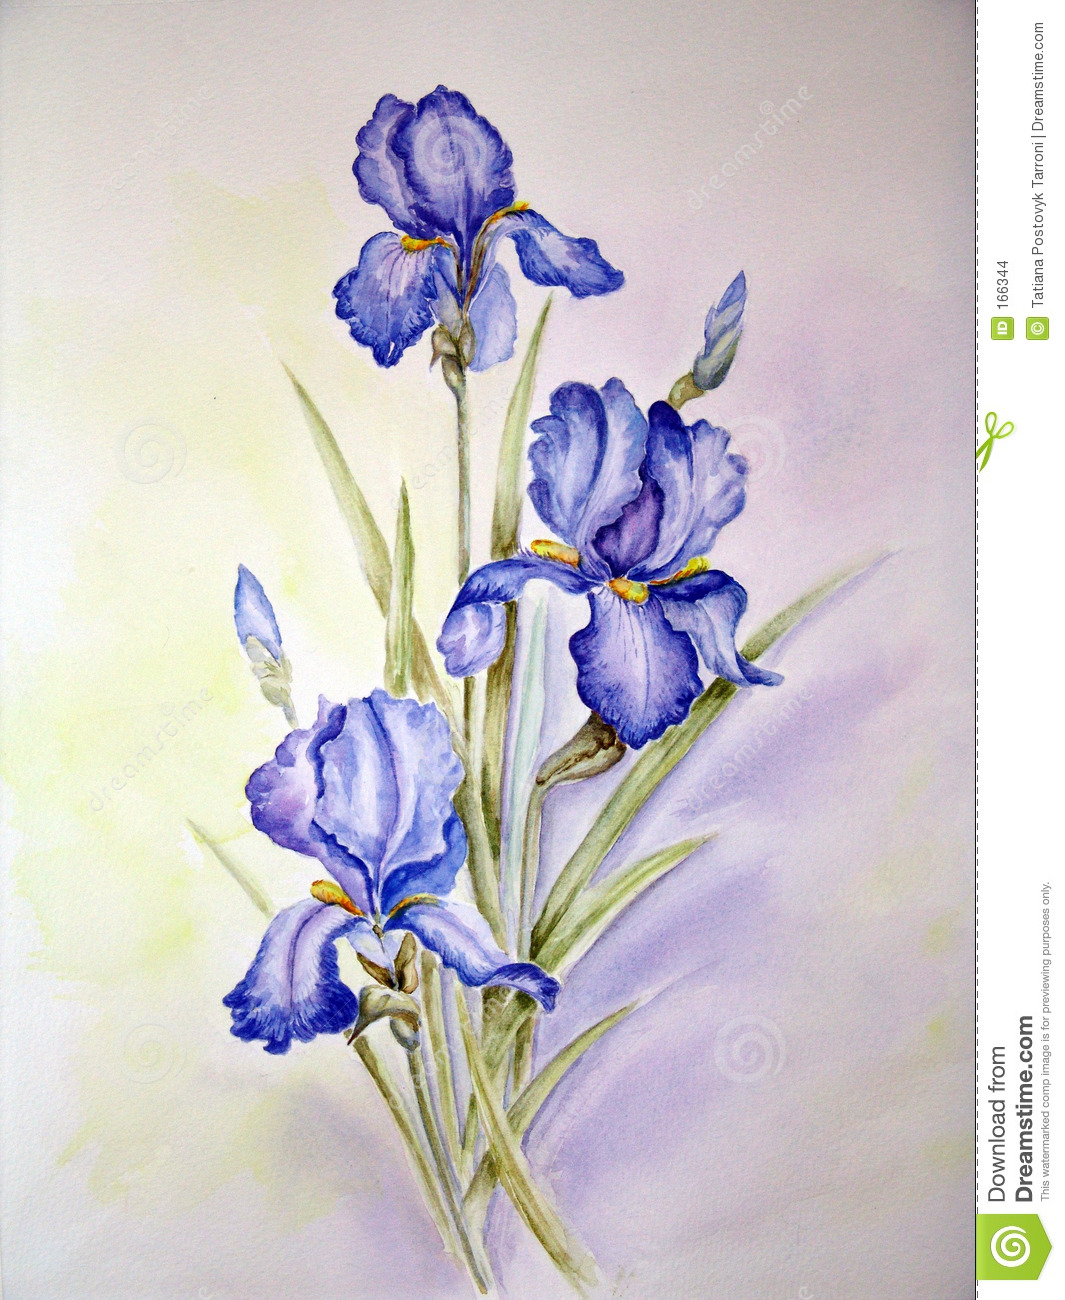 blue irises painting stock illustration illustration of watercolour 166344. Black Bedroom Furniture Sets. Home Design Ideas